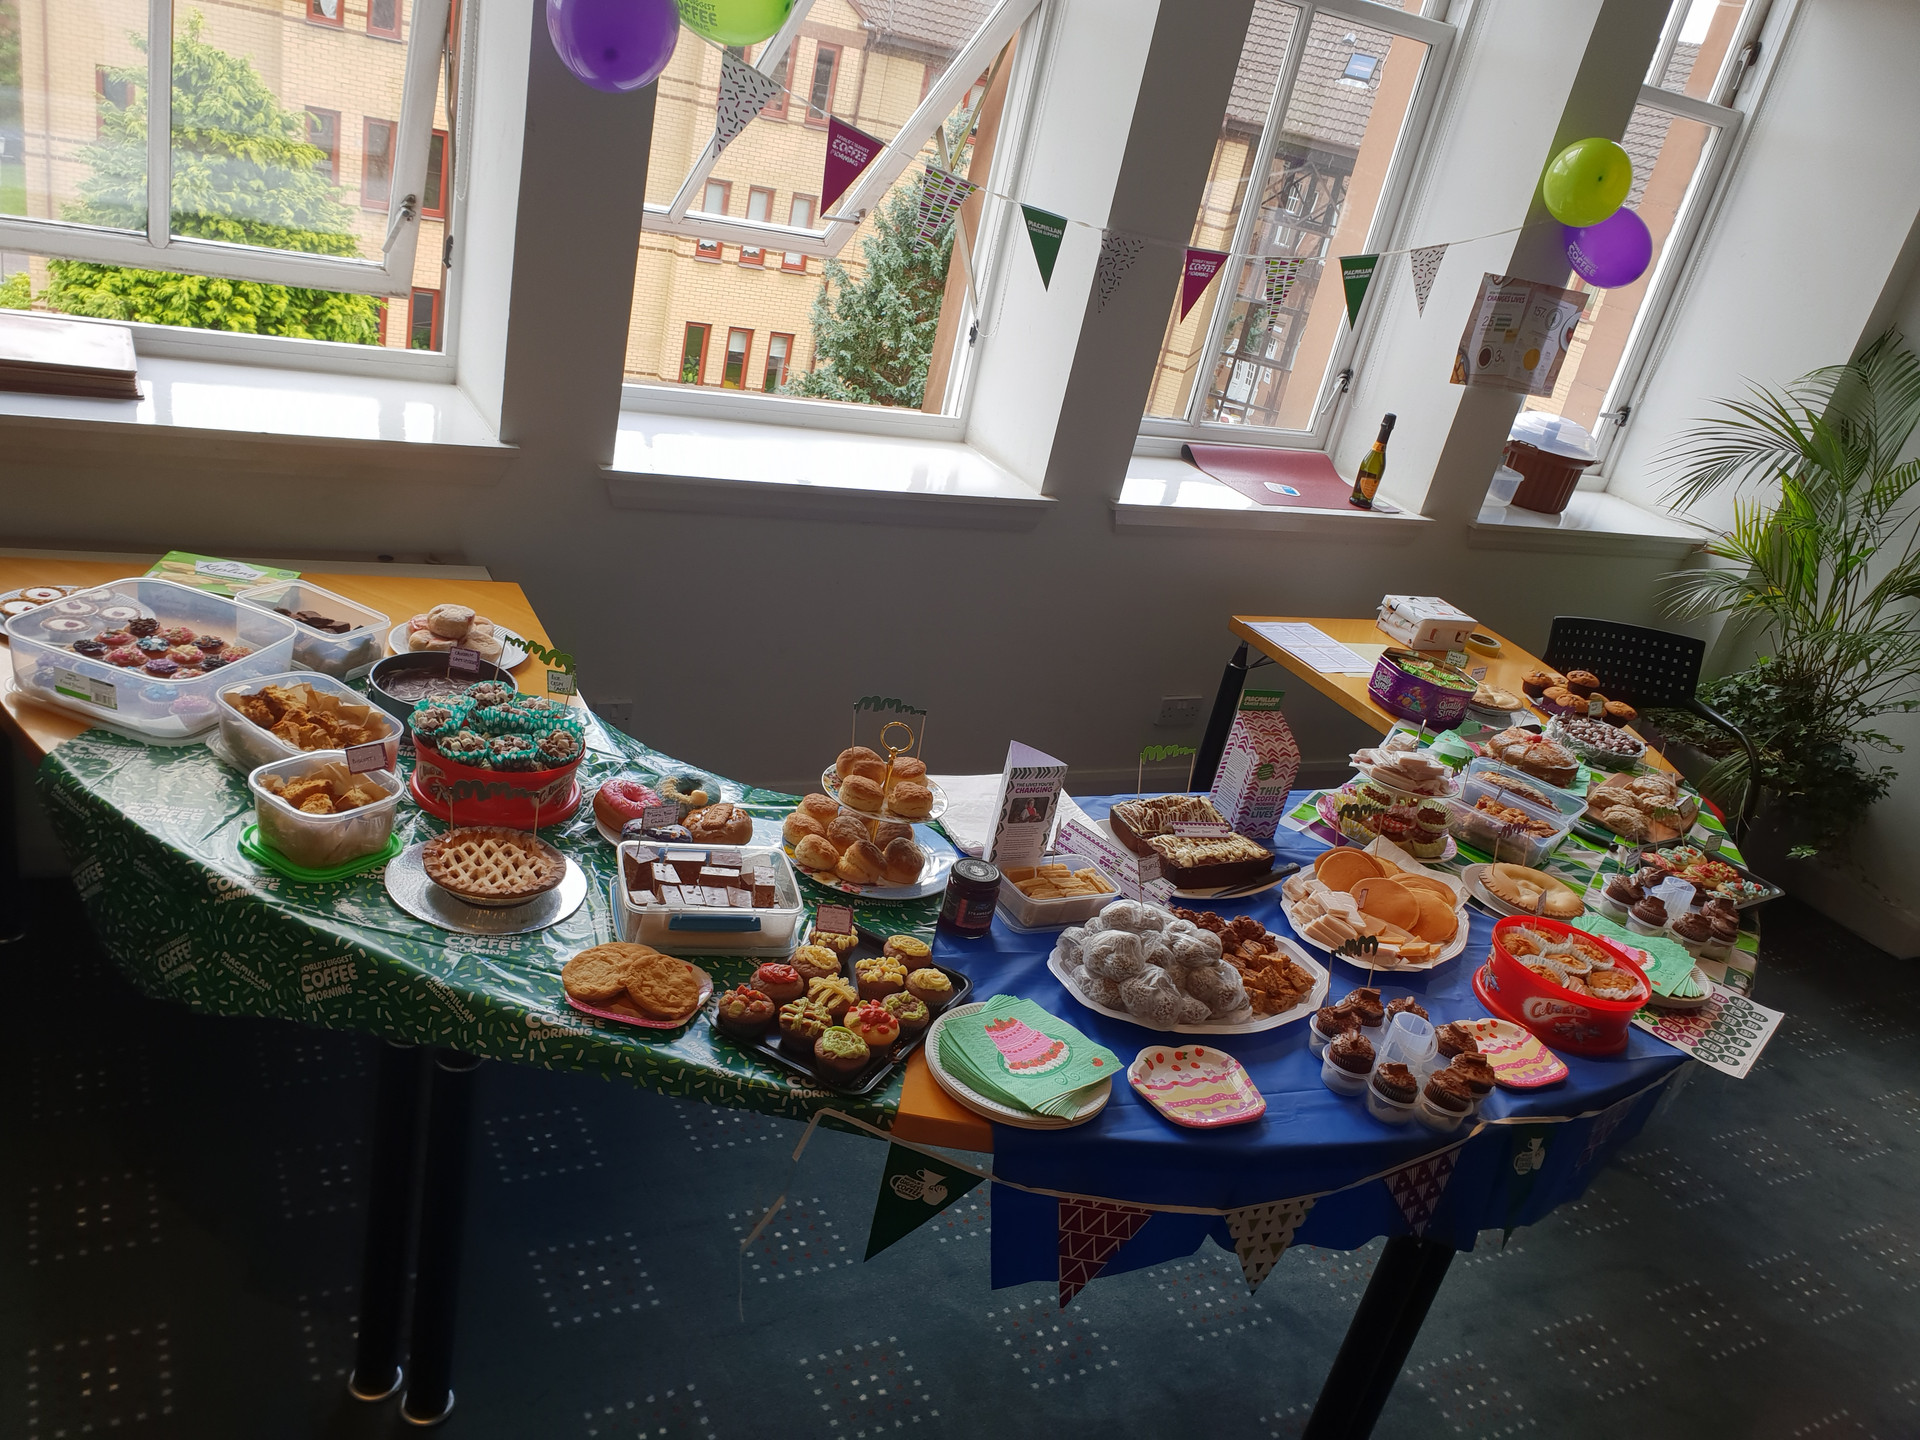 McMillian Coffee Morning Hosted by CRGP, showing the assortment of home baked goods the team brought to raise money for charity